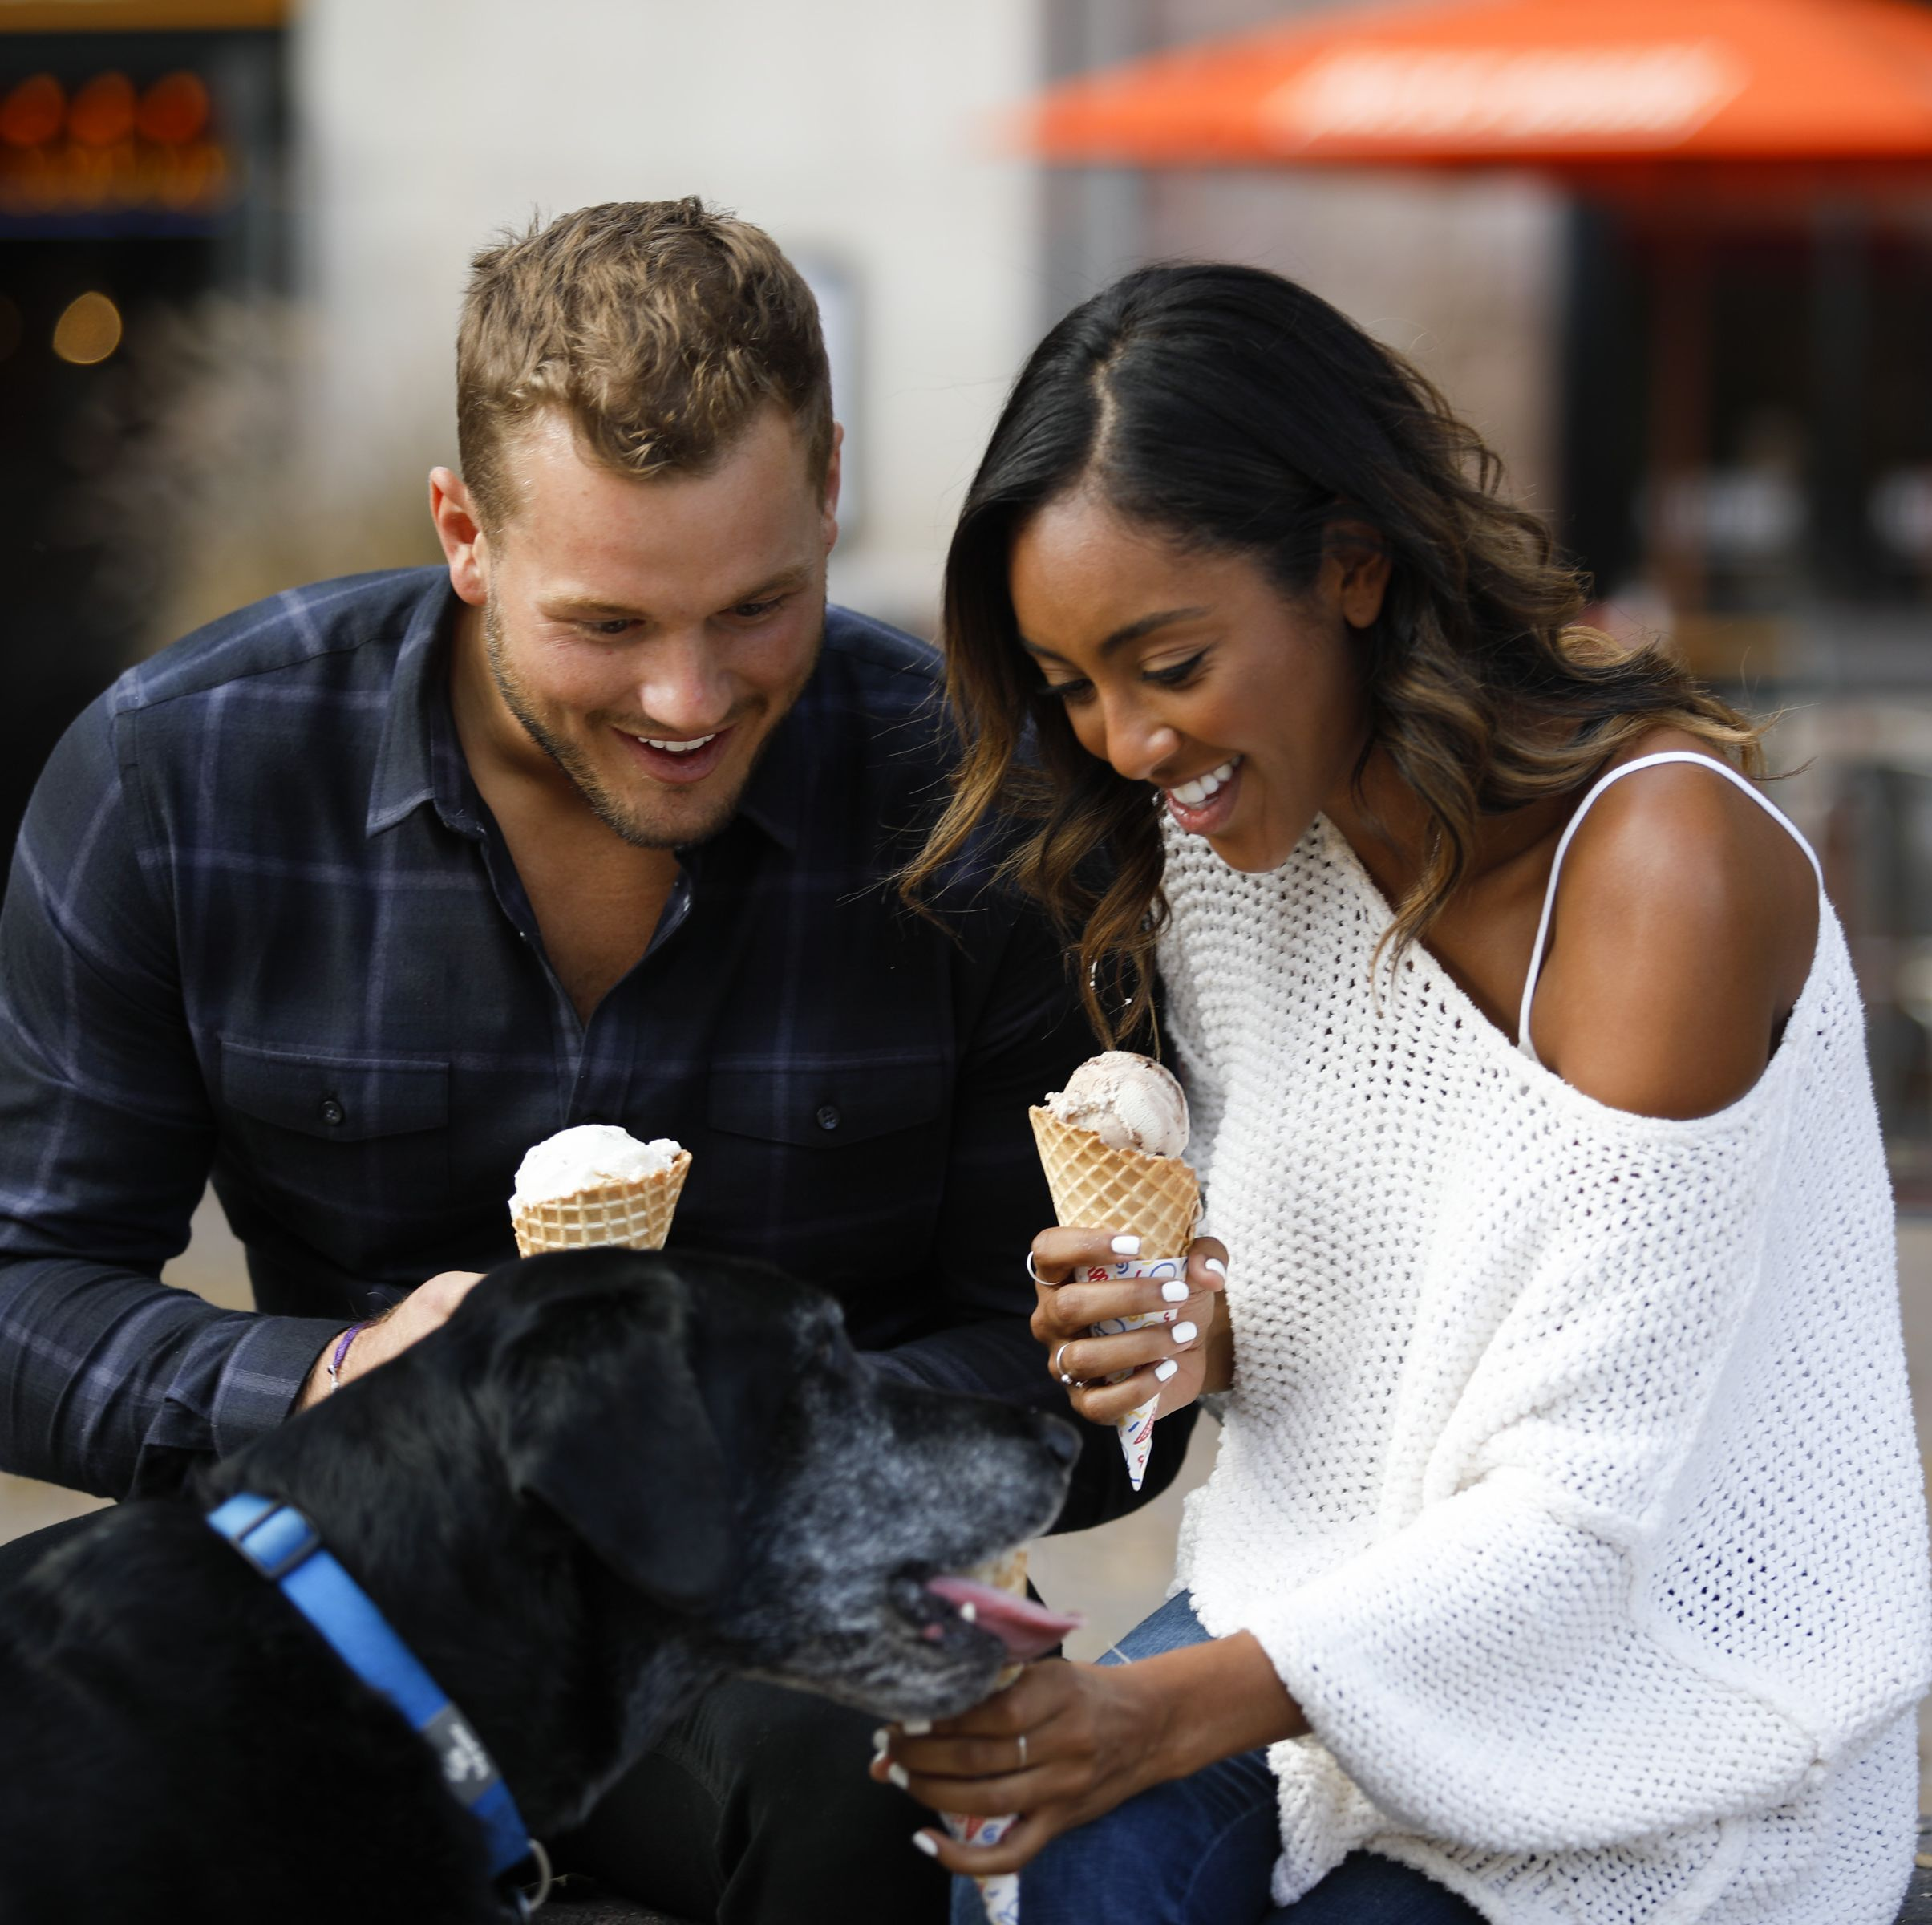 'The Bachelor' Recap: I Guess We're Not Meant to Want to Be the Bachelorette?